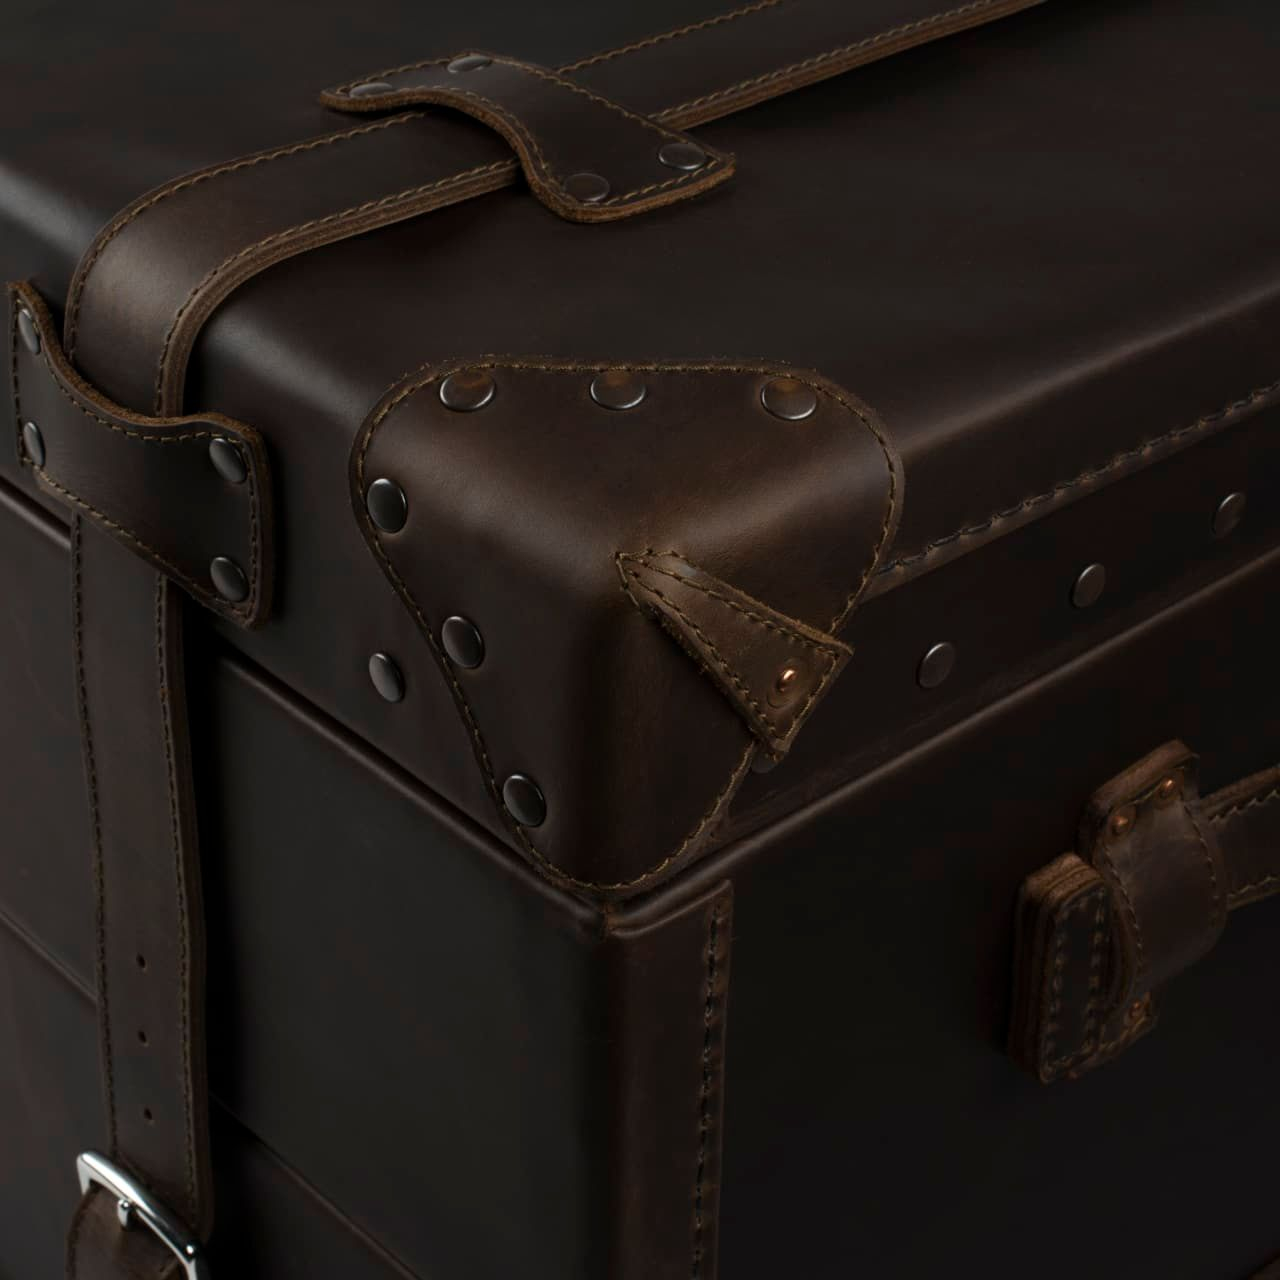 Leather Trunk in color Dark Coffee Brown Zoomed in on the Corner Covers